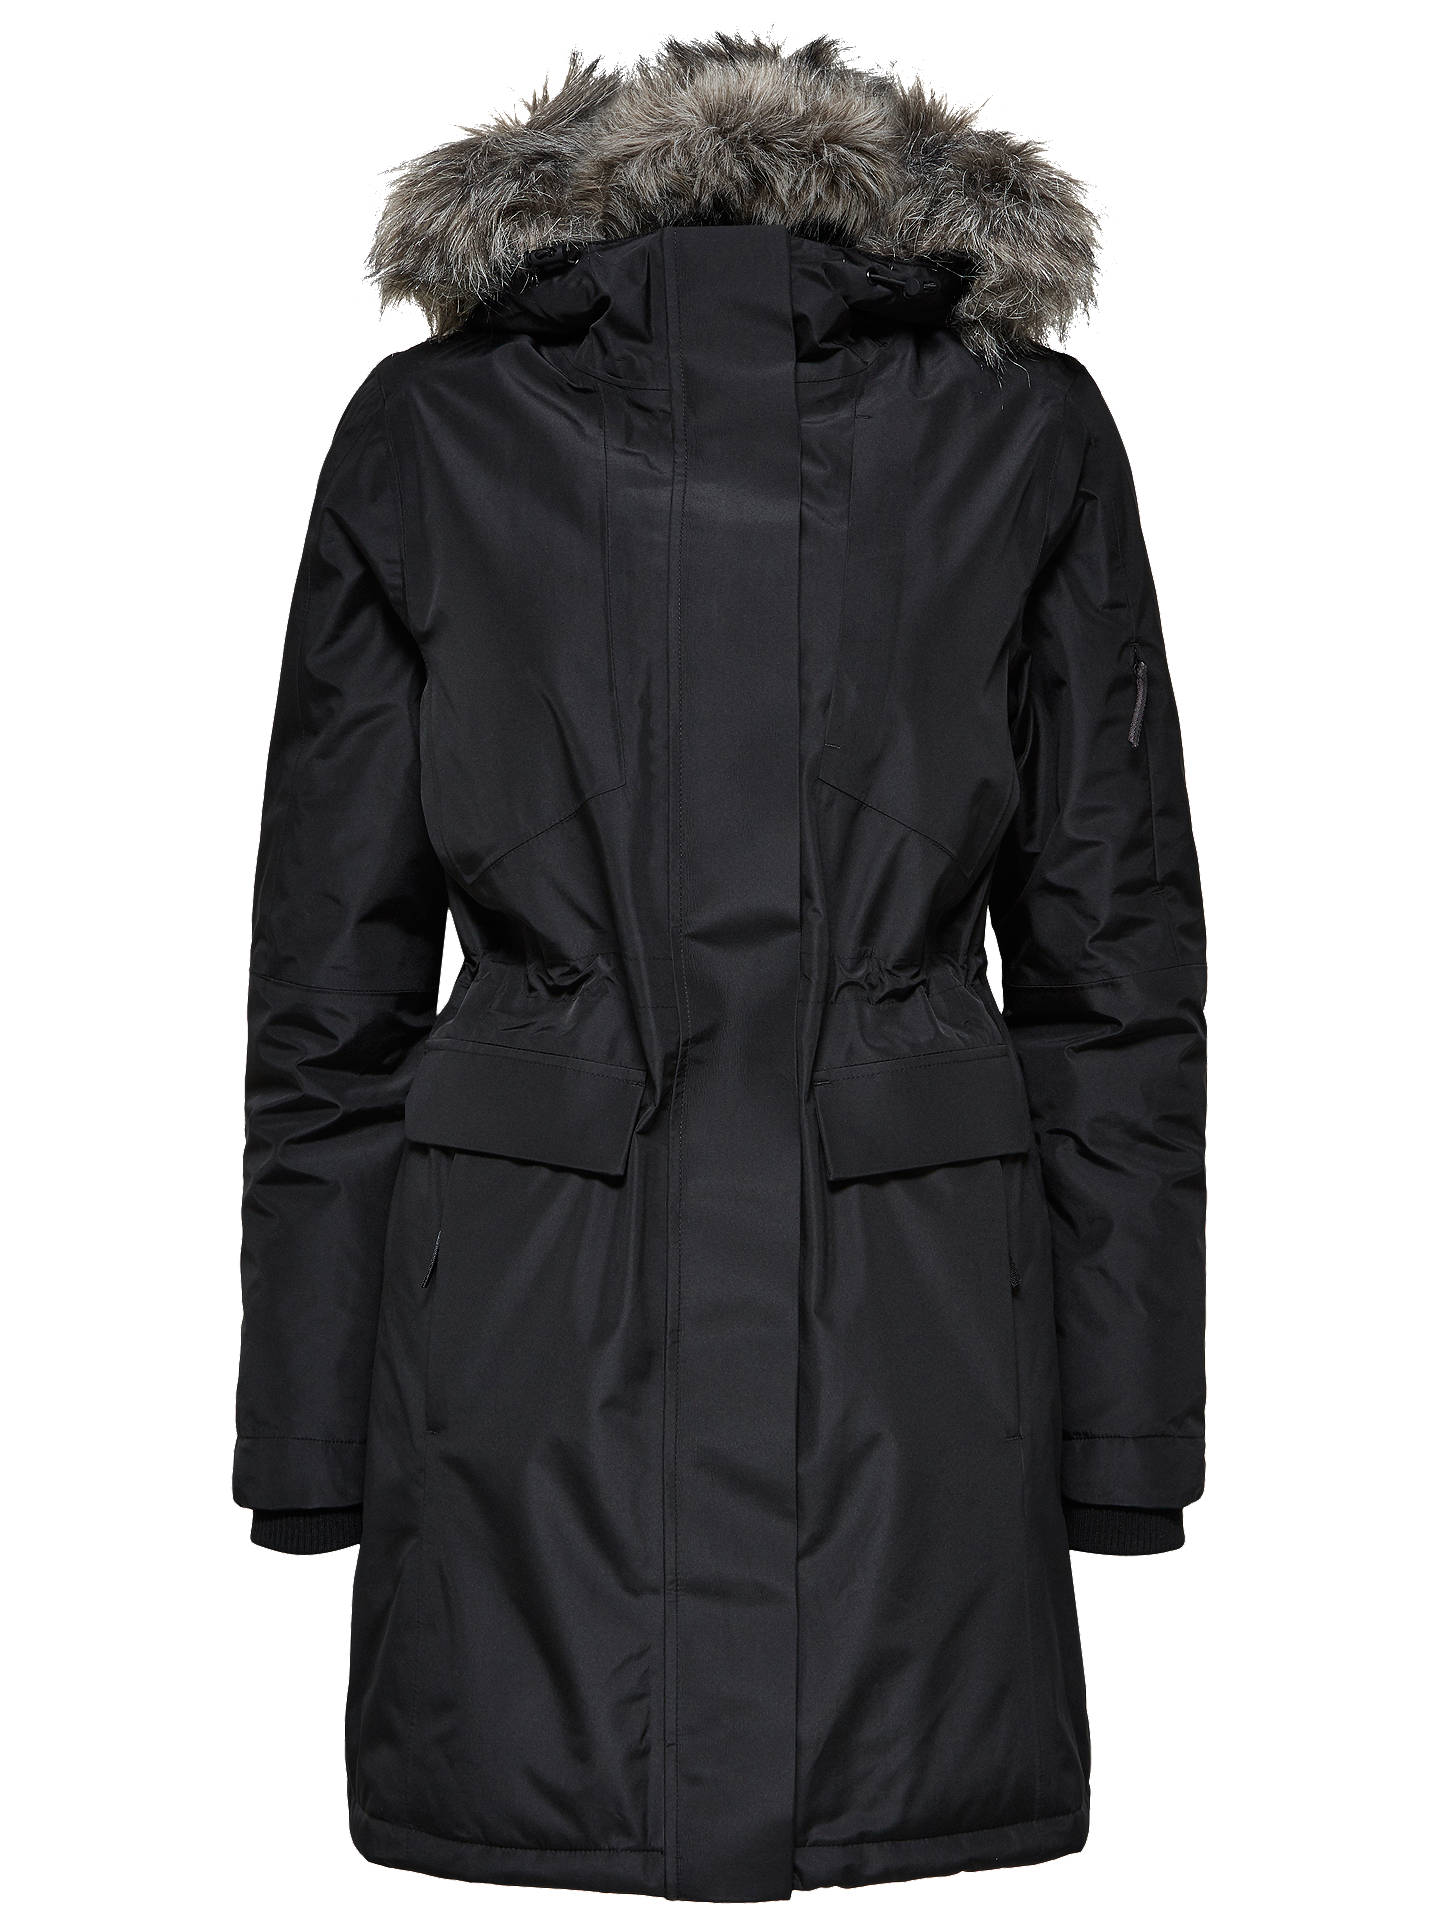 Buy Selected Femme Technical Coat, Black, 8 Online at johnlewis.com